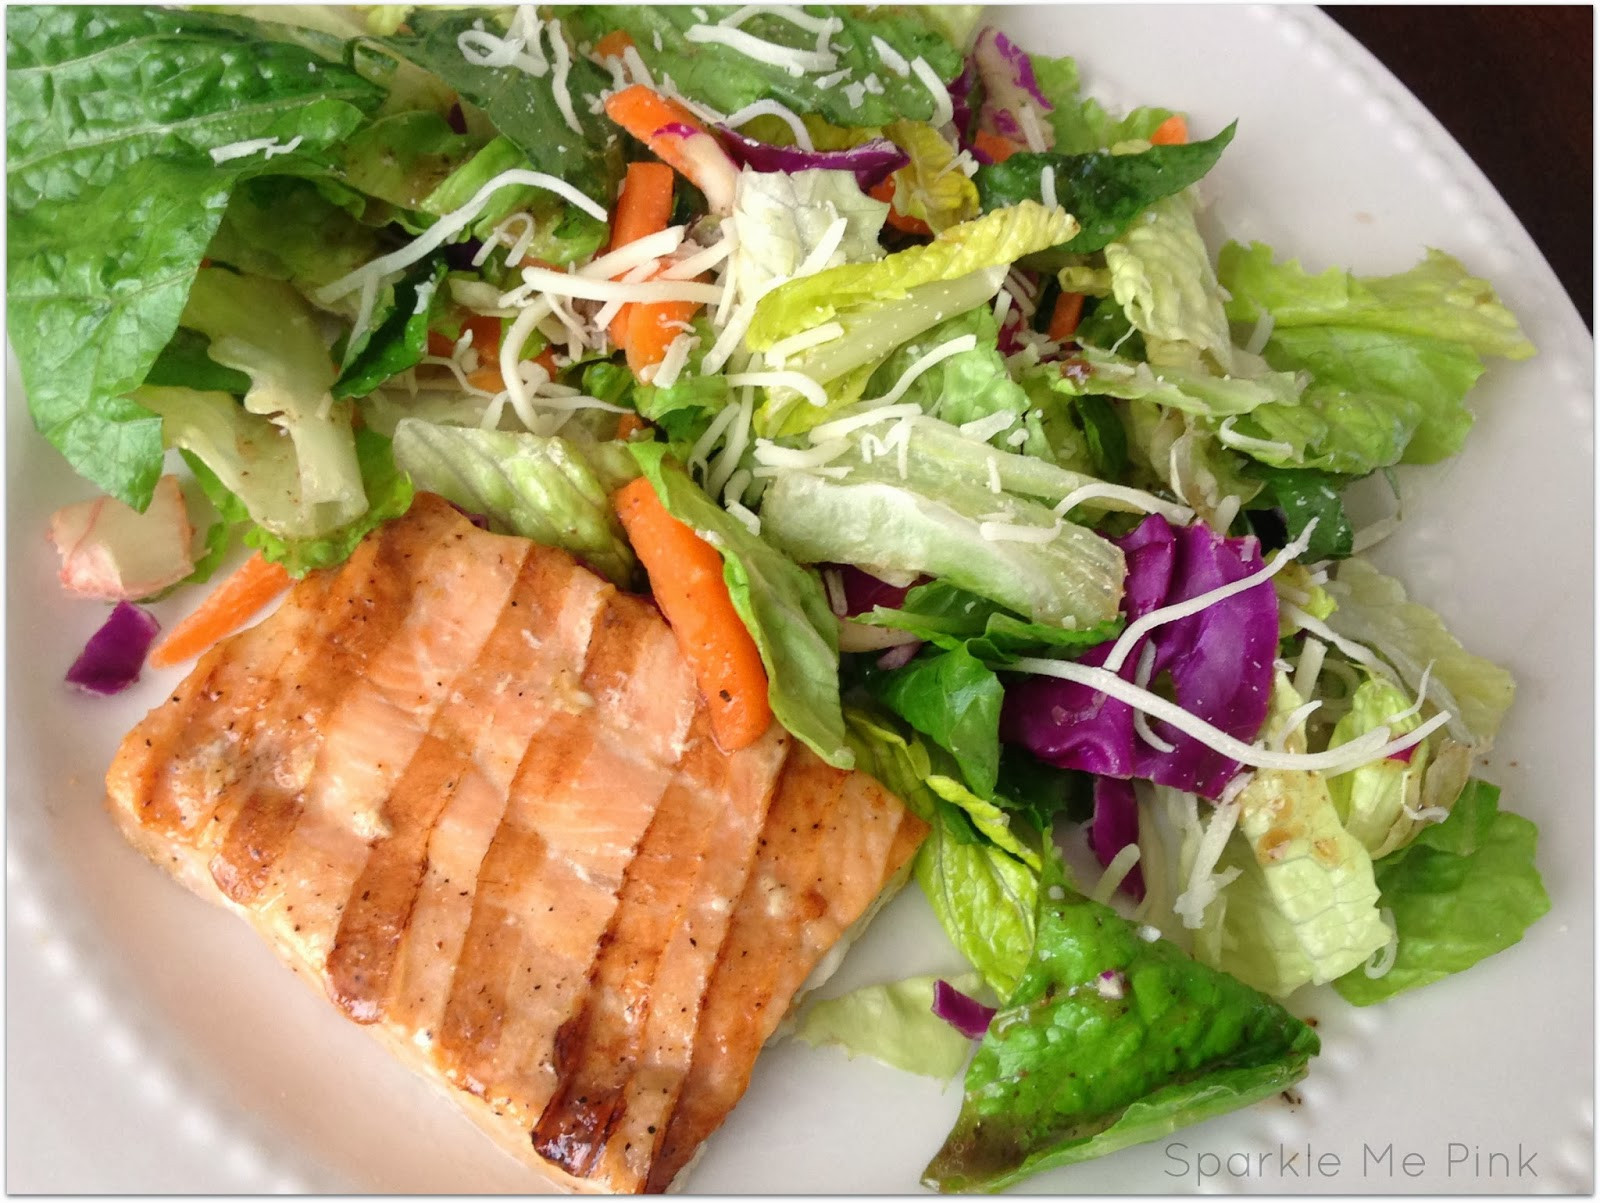 Healthy Salmon Salad  Sparkle Me Pink Grilled Salmon Salad Delicious Healthy